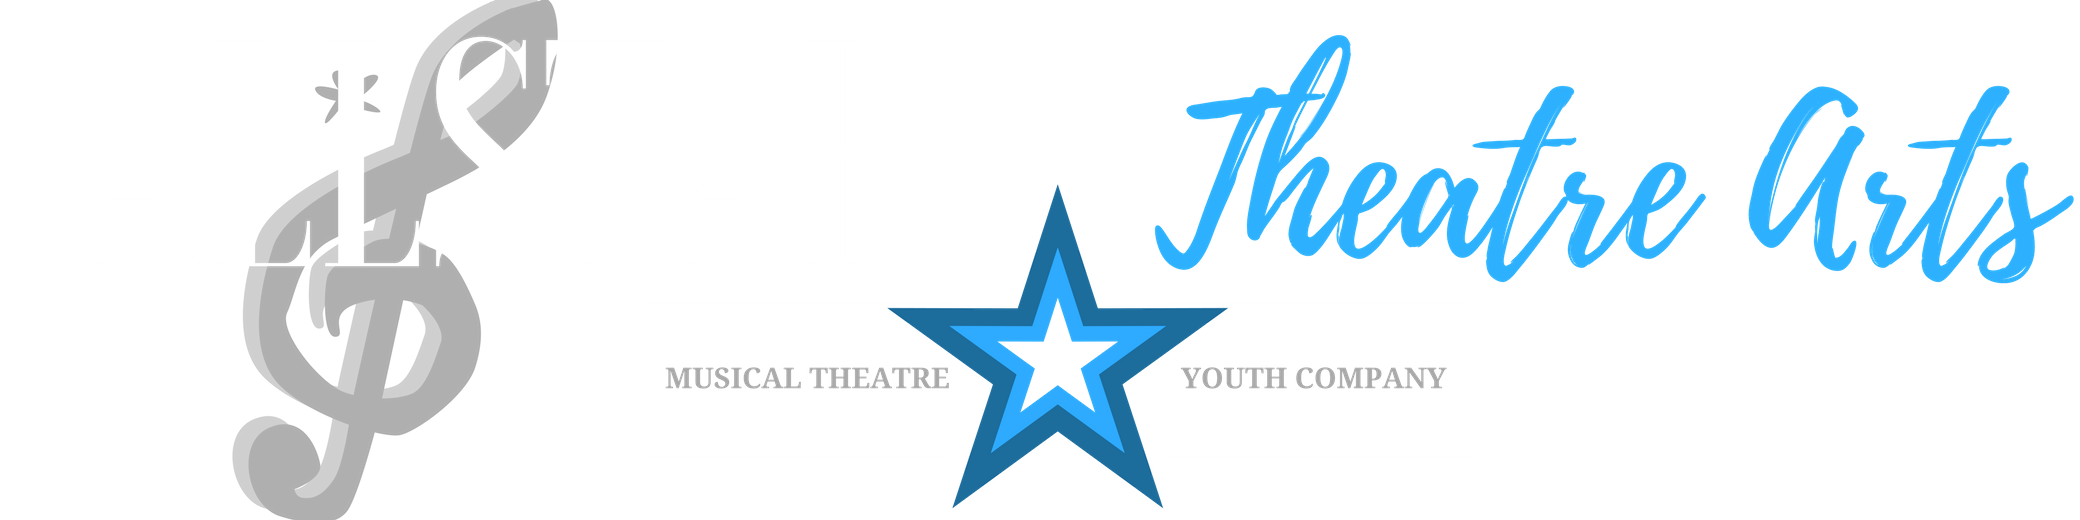 AllStar Theatre Arts